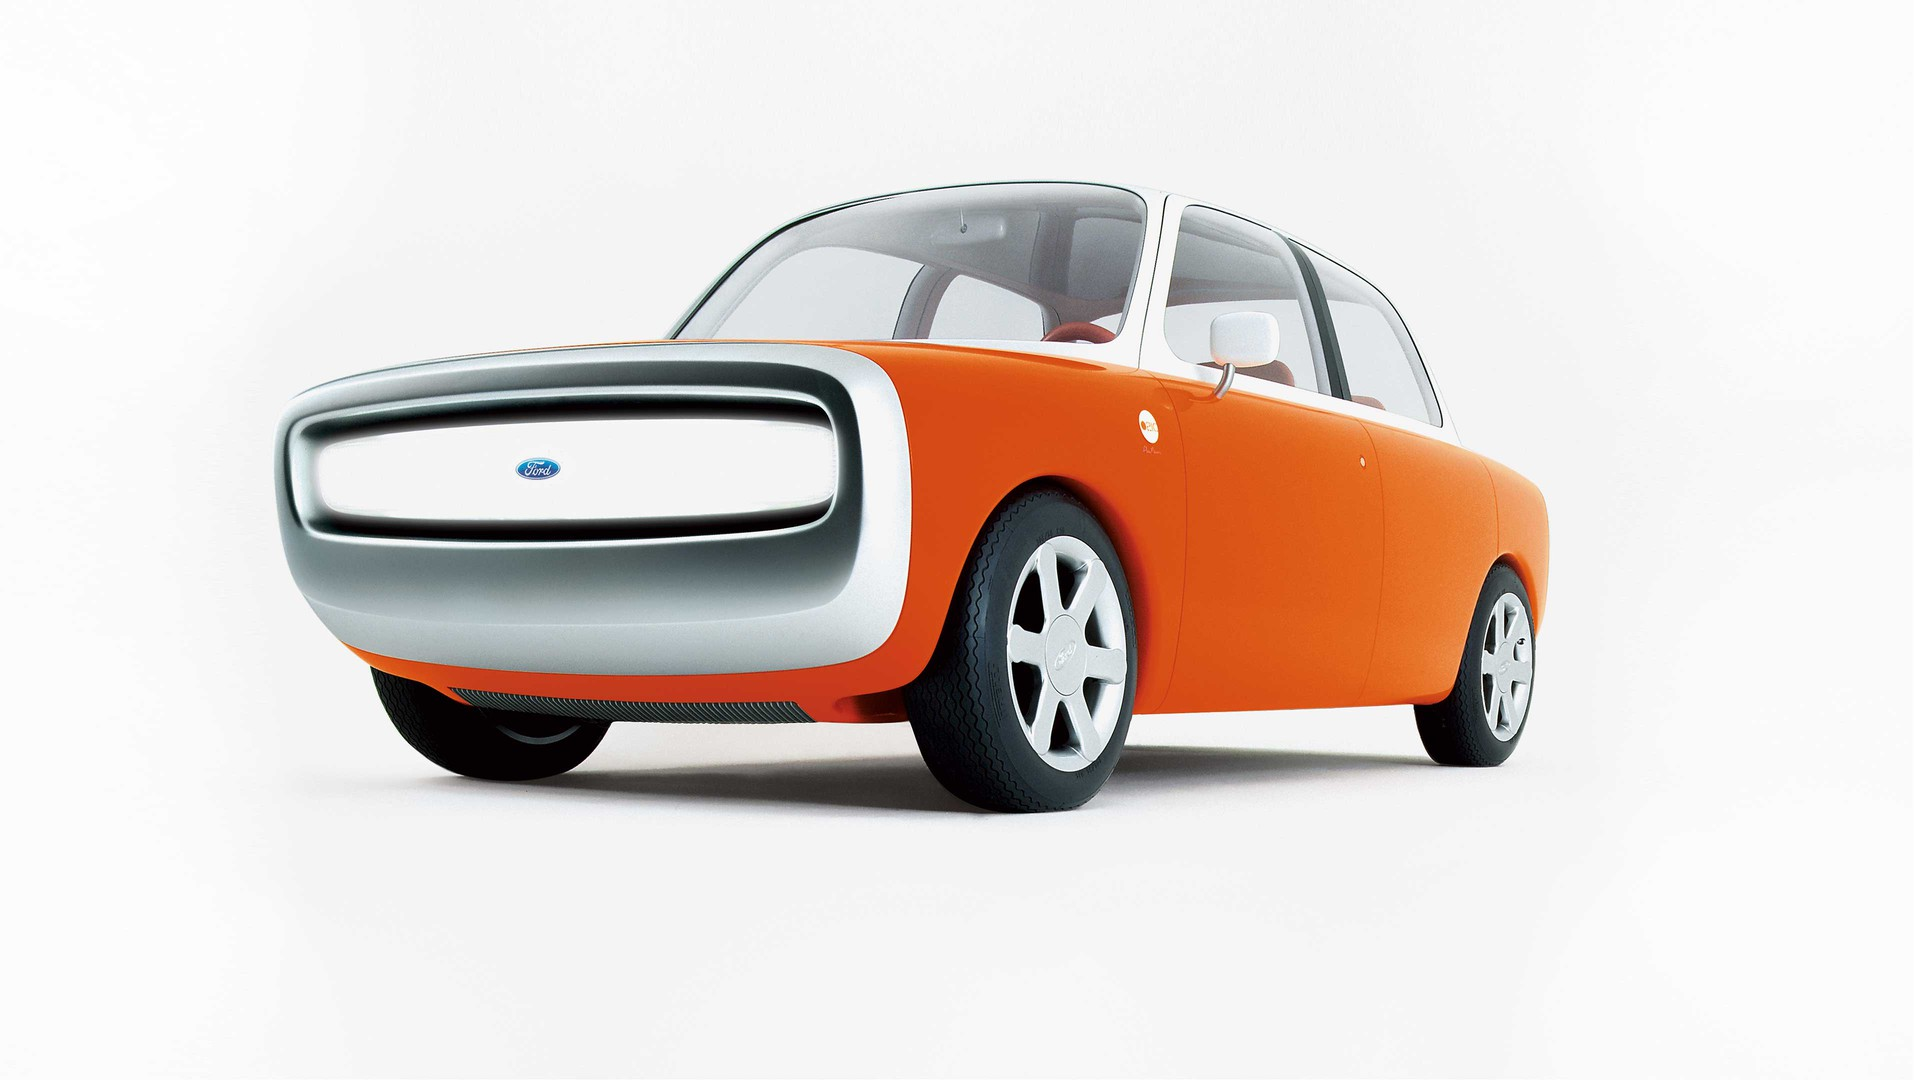 Ford 021c Concept Car Marc Newson Ltd